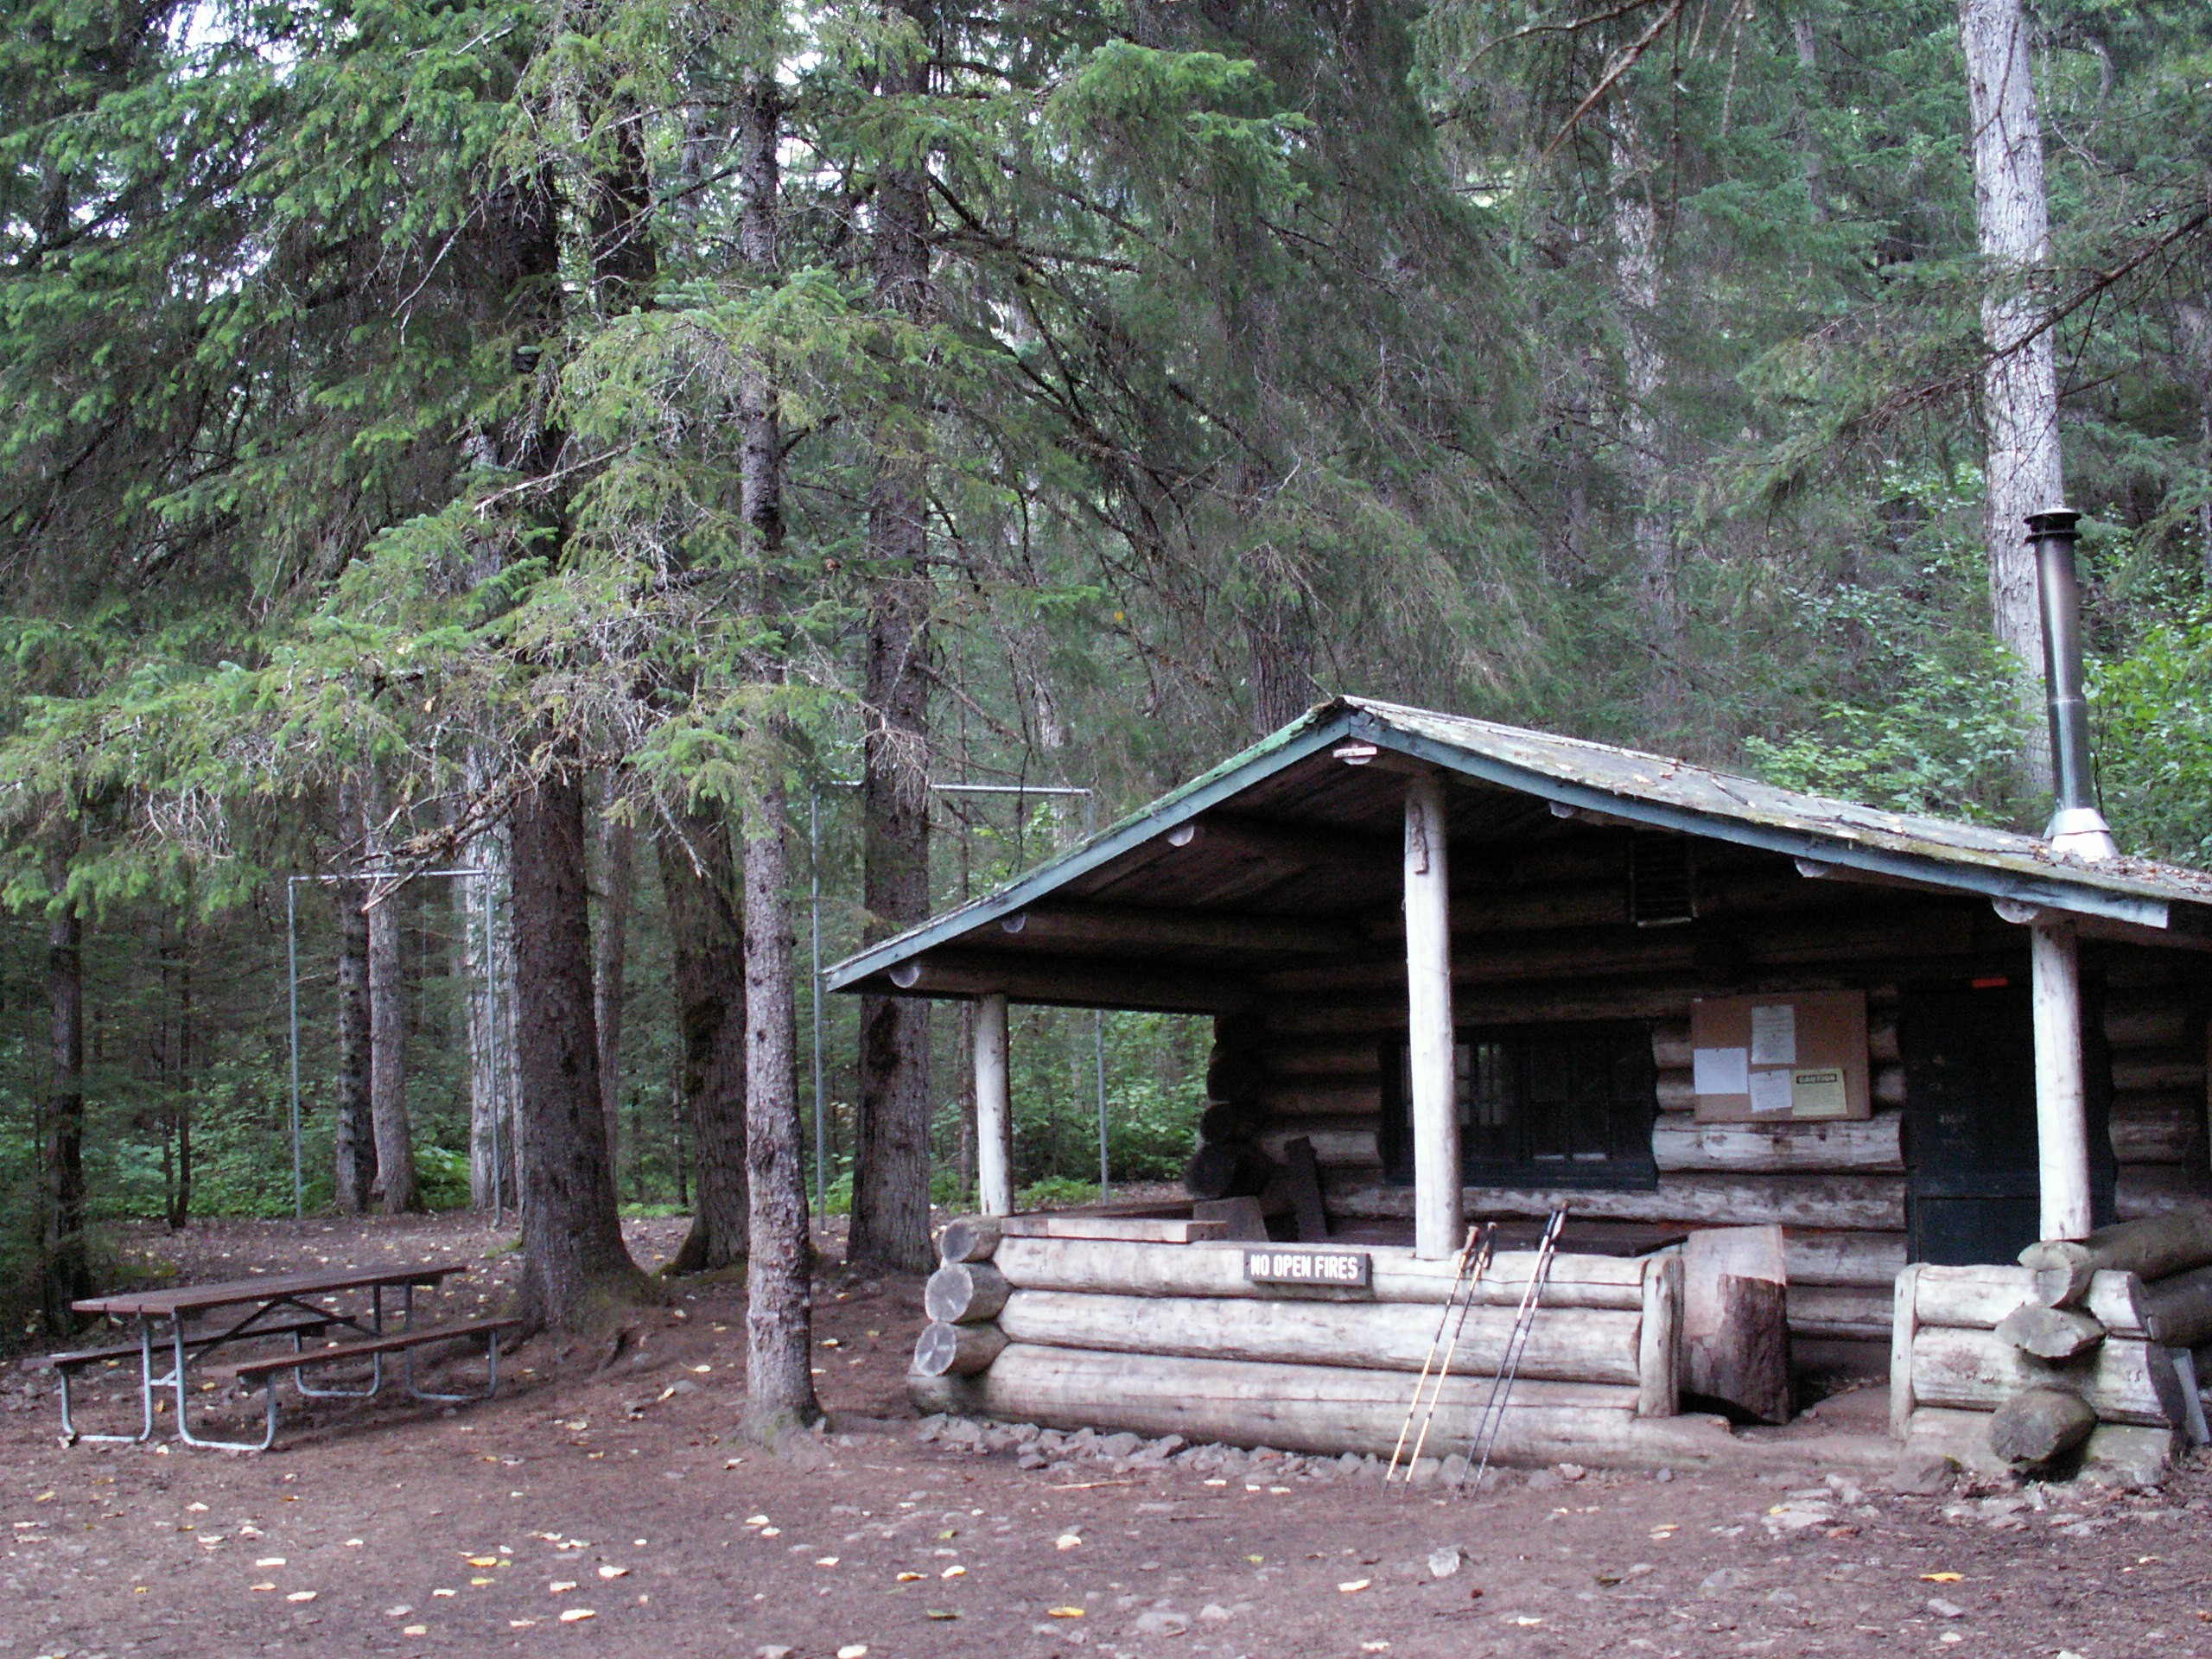 Canyon City shelter and campground.